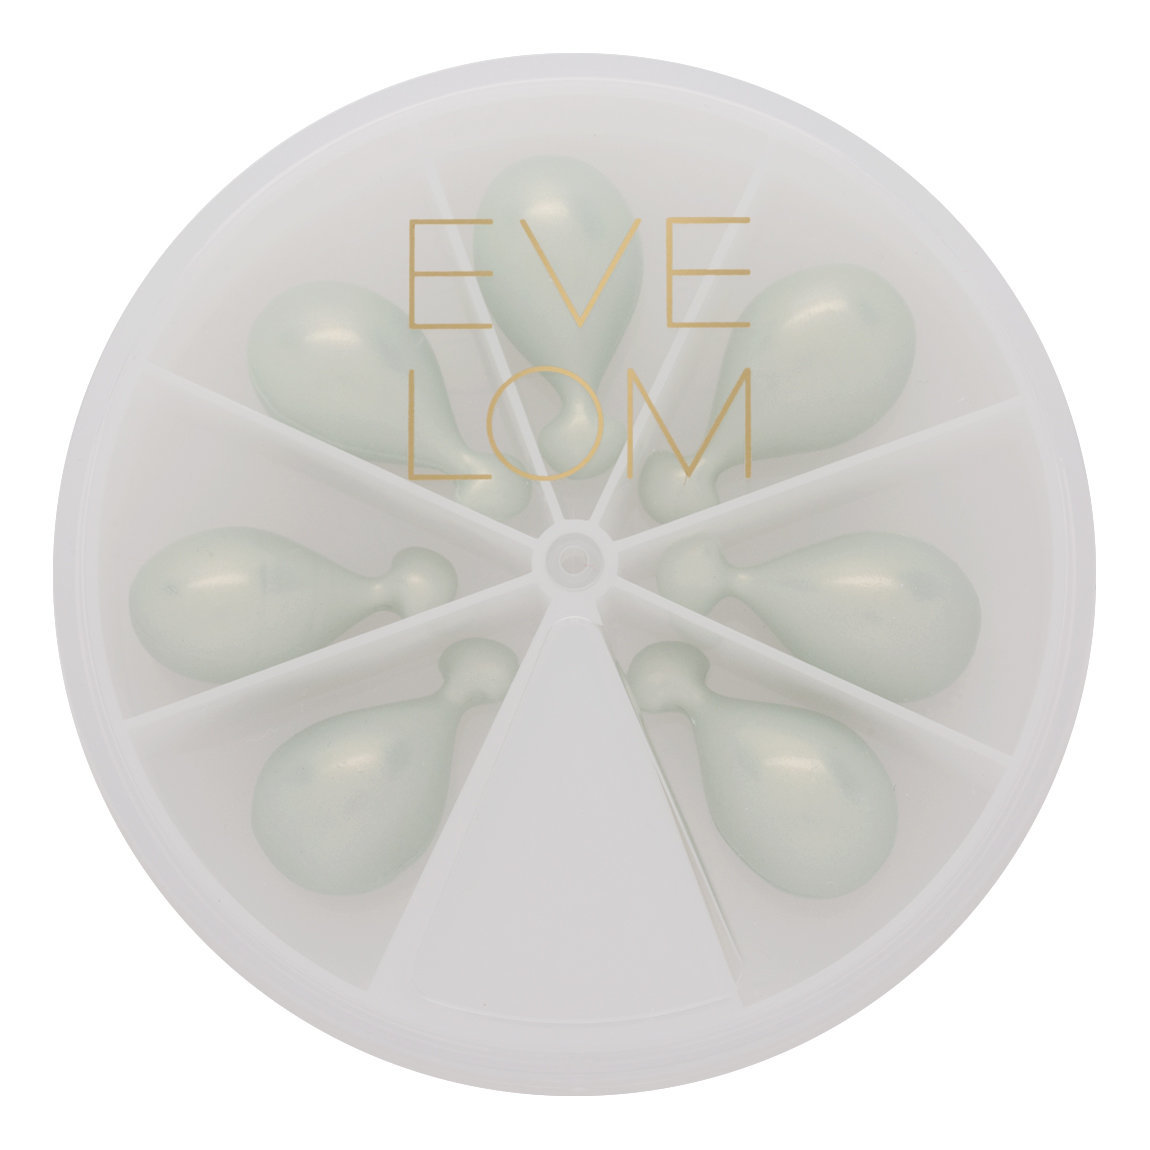 EVE LOM Cleansing Oil Capsules Travel Pack alternative view 1 - product swatch.